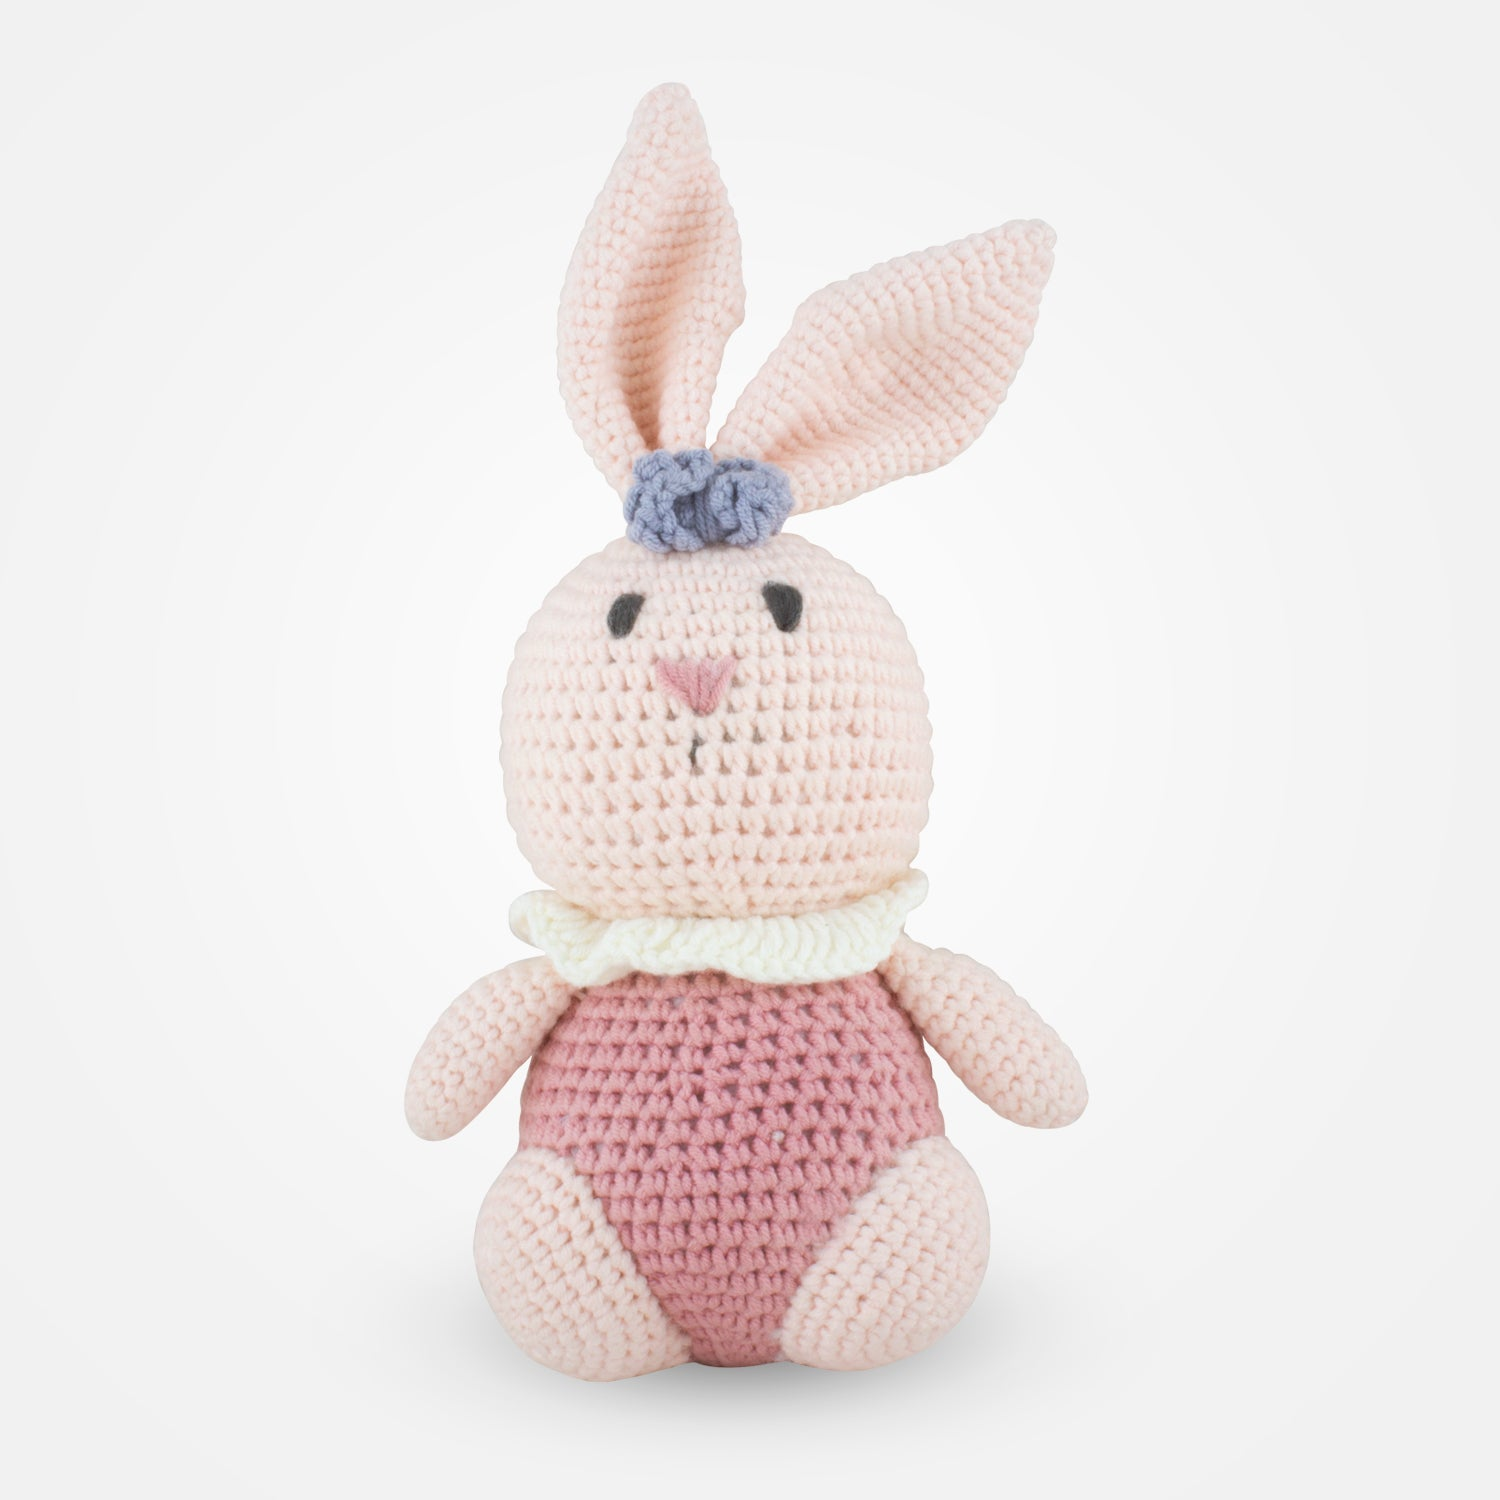 Rosey - Handmade Crochet Soft Toy